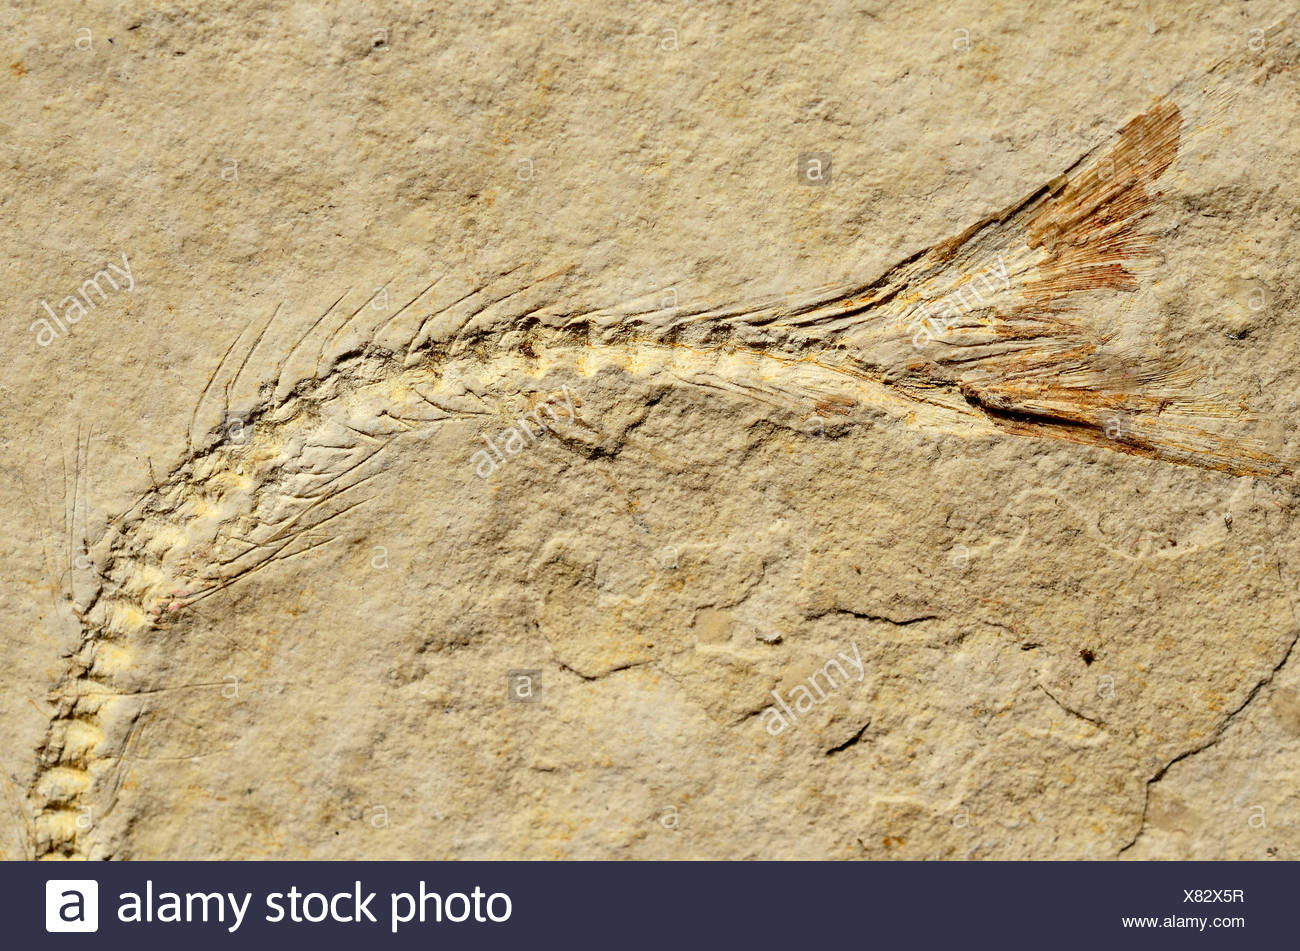 Fossil of a herring-related fish (Anaesthanion angustus), Upper Jurassic, around 150 million years Solnhofen Plattenkalk - Stock Image